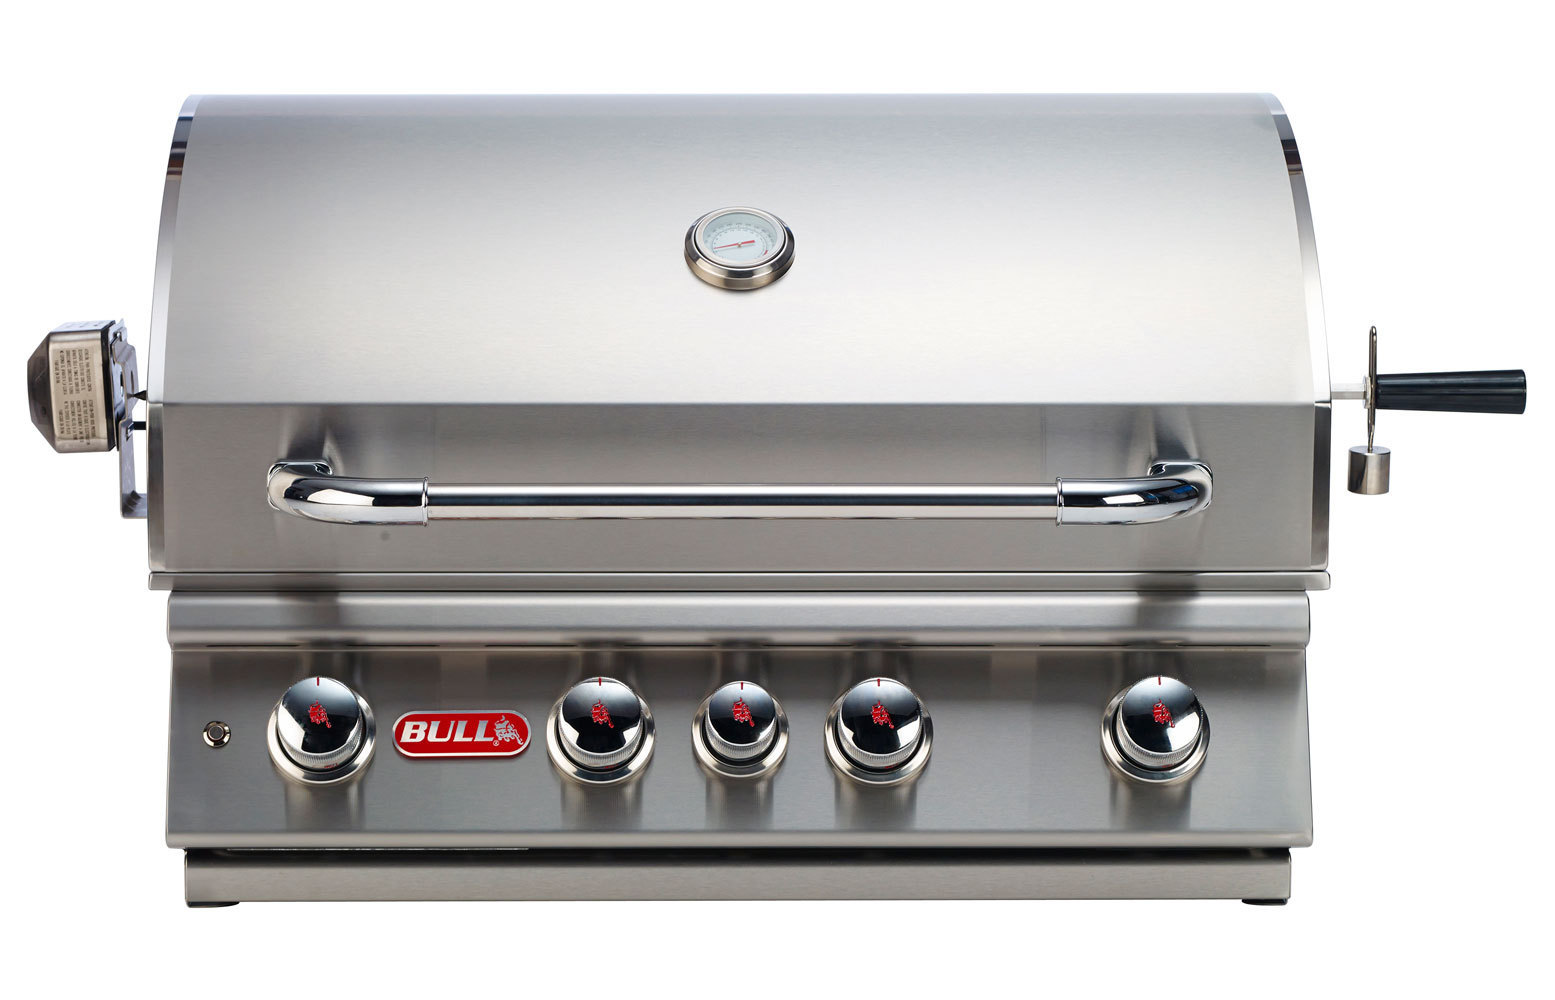 Bull angus built in gas barbecue the barbecue store spain for Giordano shop barbecue a gas